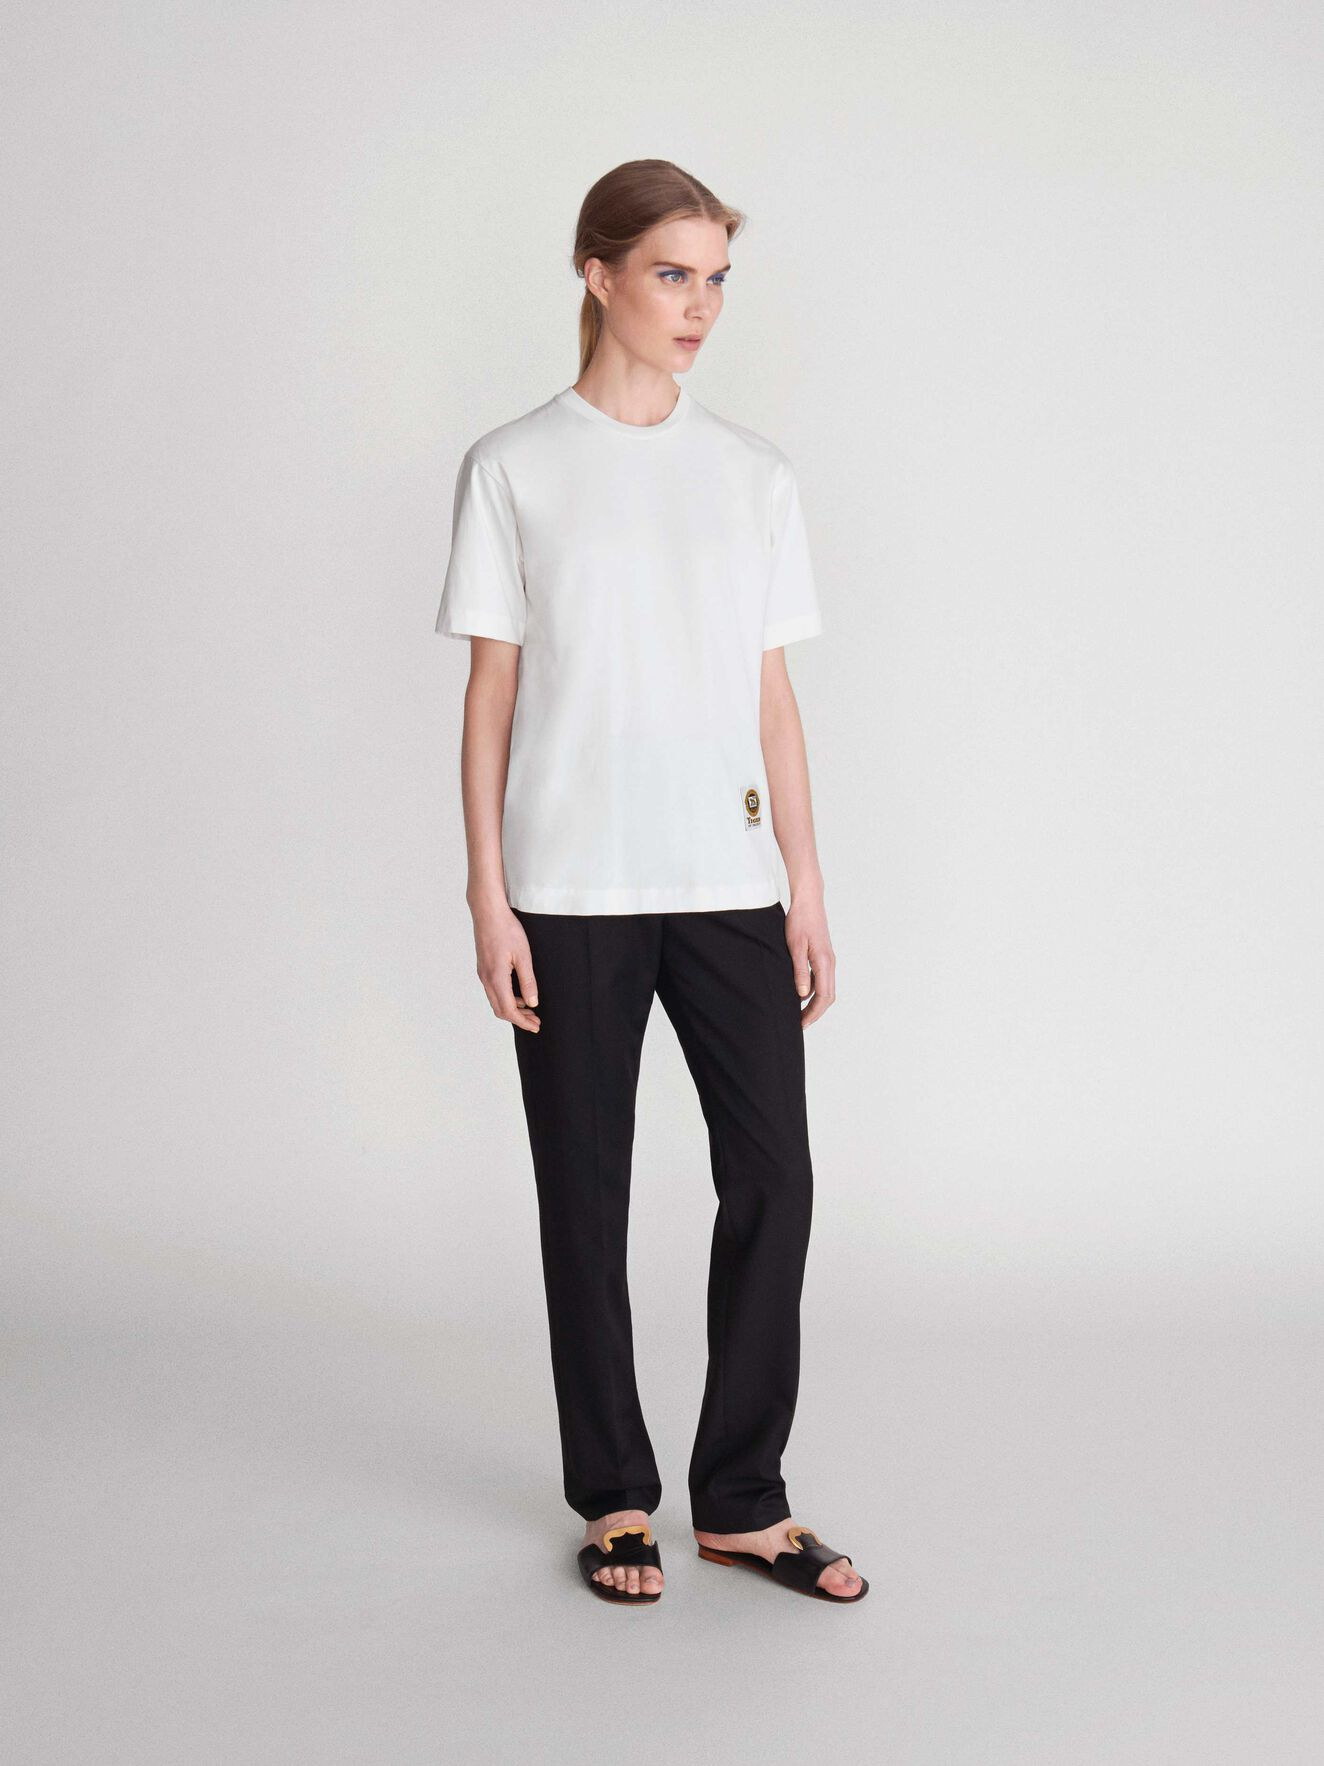 Dellana T-Shirt in Star White from Tiger of Sweden